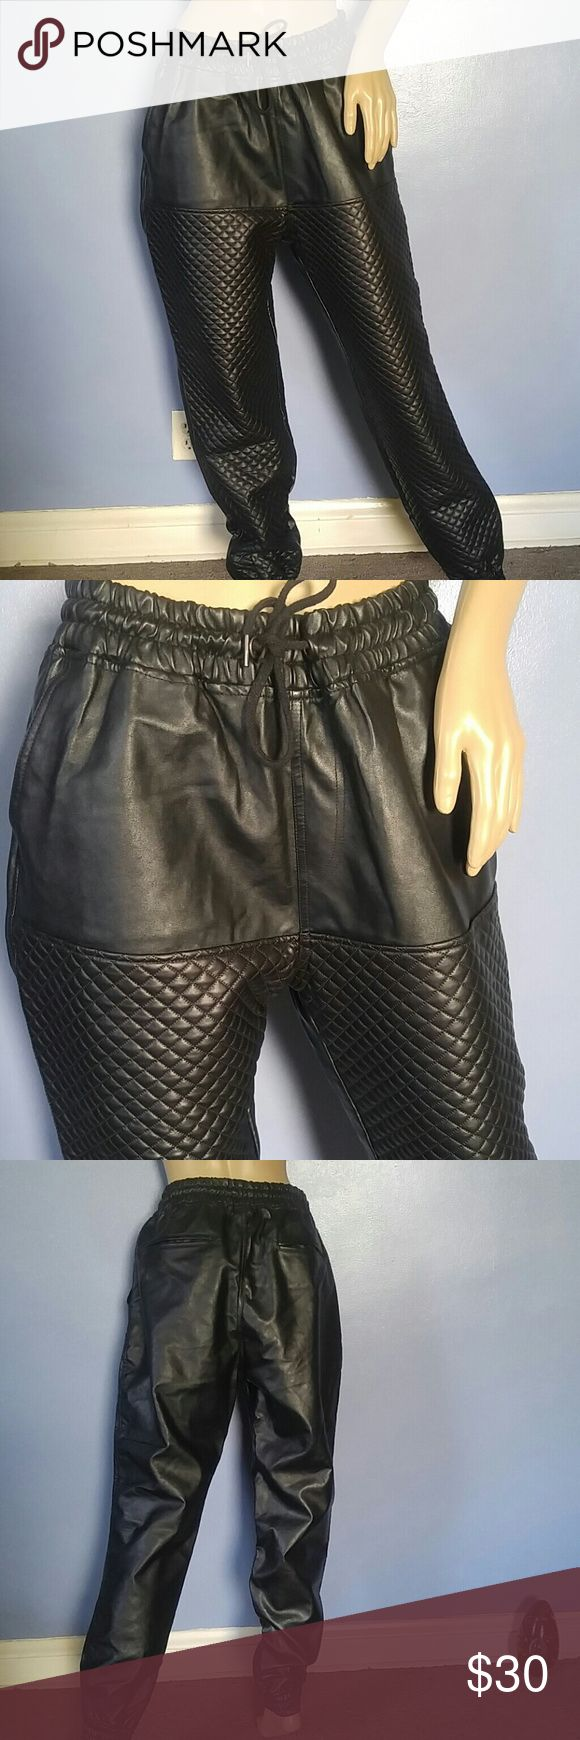 """Sale🌟 Vegan Leather Jogger Pants  Quilted Design. Unisex Vegan Leather Jogger Pants  Quilted Design. Beautiful Condition! Drawstring Waist. 2 Front Pockets 2 Back Pockets. Loose Fit. Fits Mens : Large Fits Womens: XL Elastic Leg and Waist. Waist Stretches to 40"""" Total Length: 41"""" M.O. Seven Pants"""